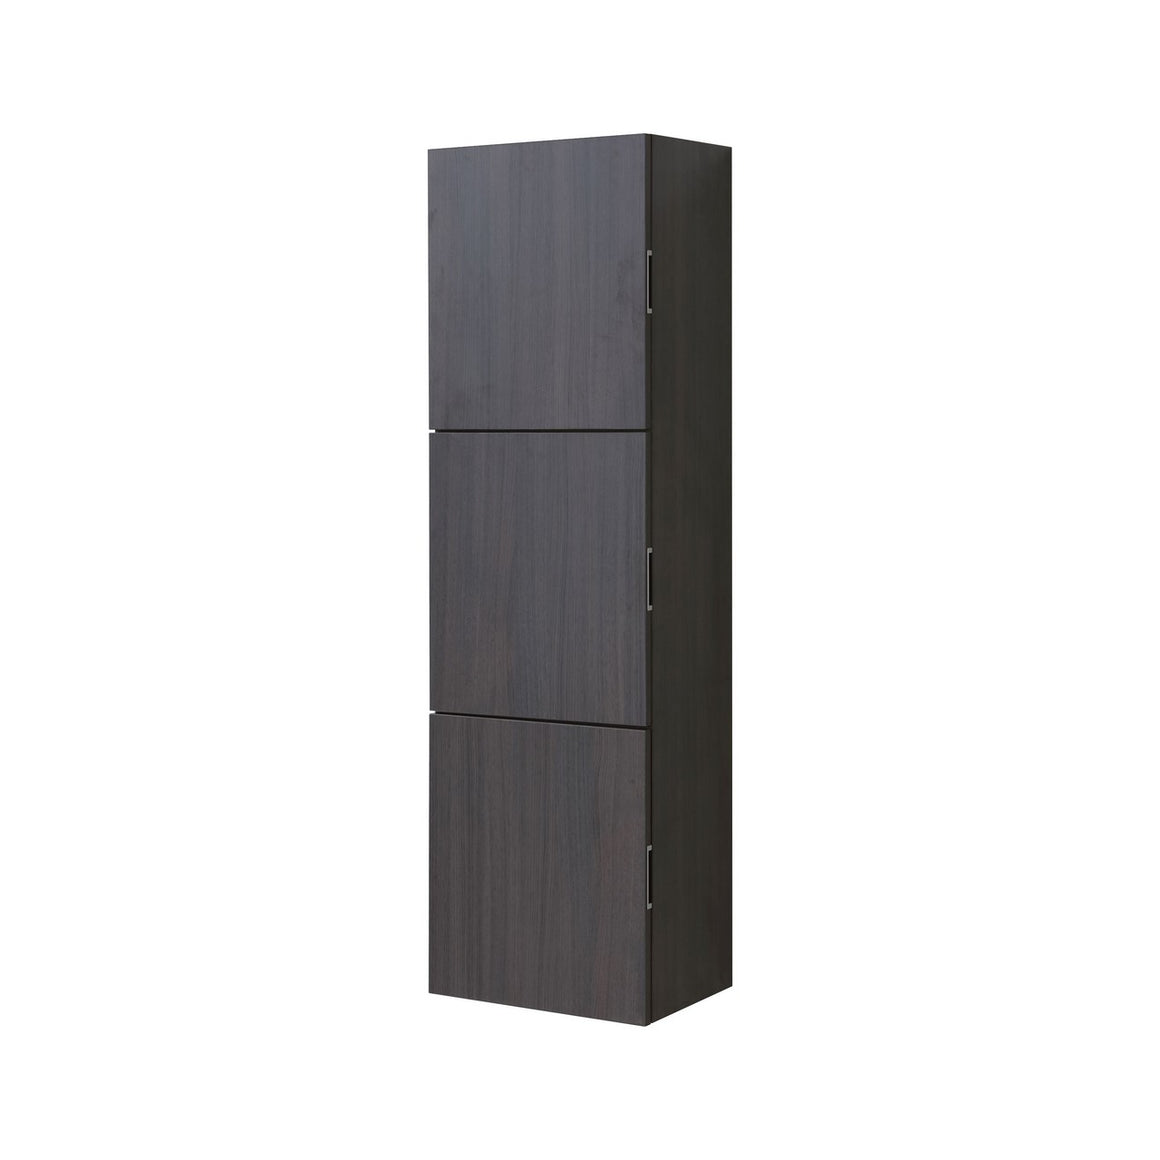 "Bliss 18"" Wide by 59"" High Linen Side Cabinet With Three Doors in High Gloss Gray Oak Finish"